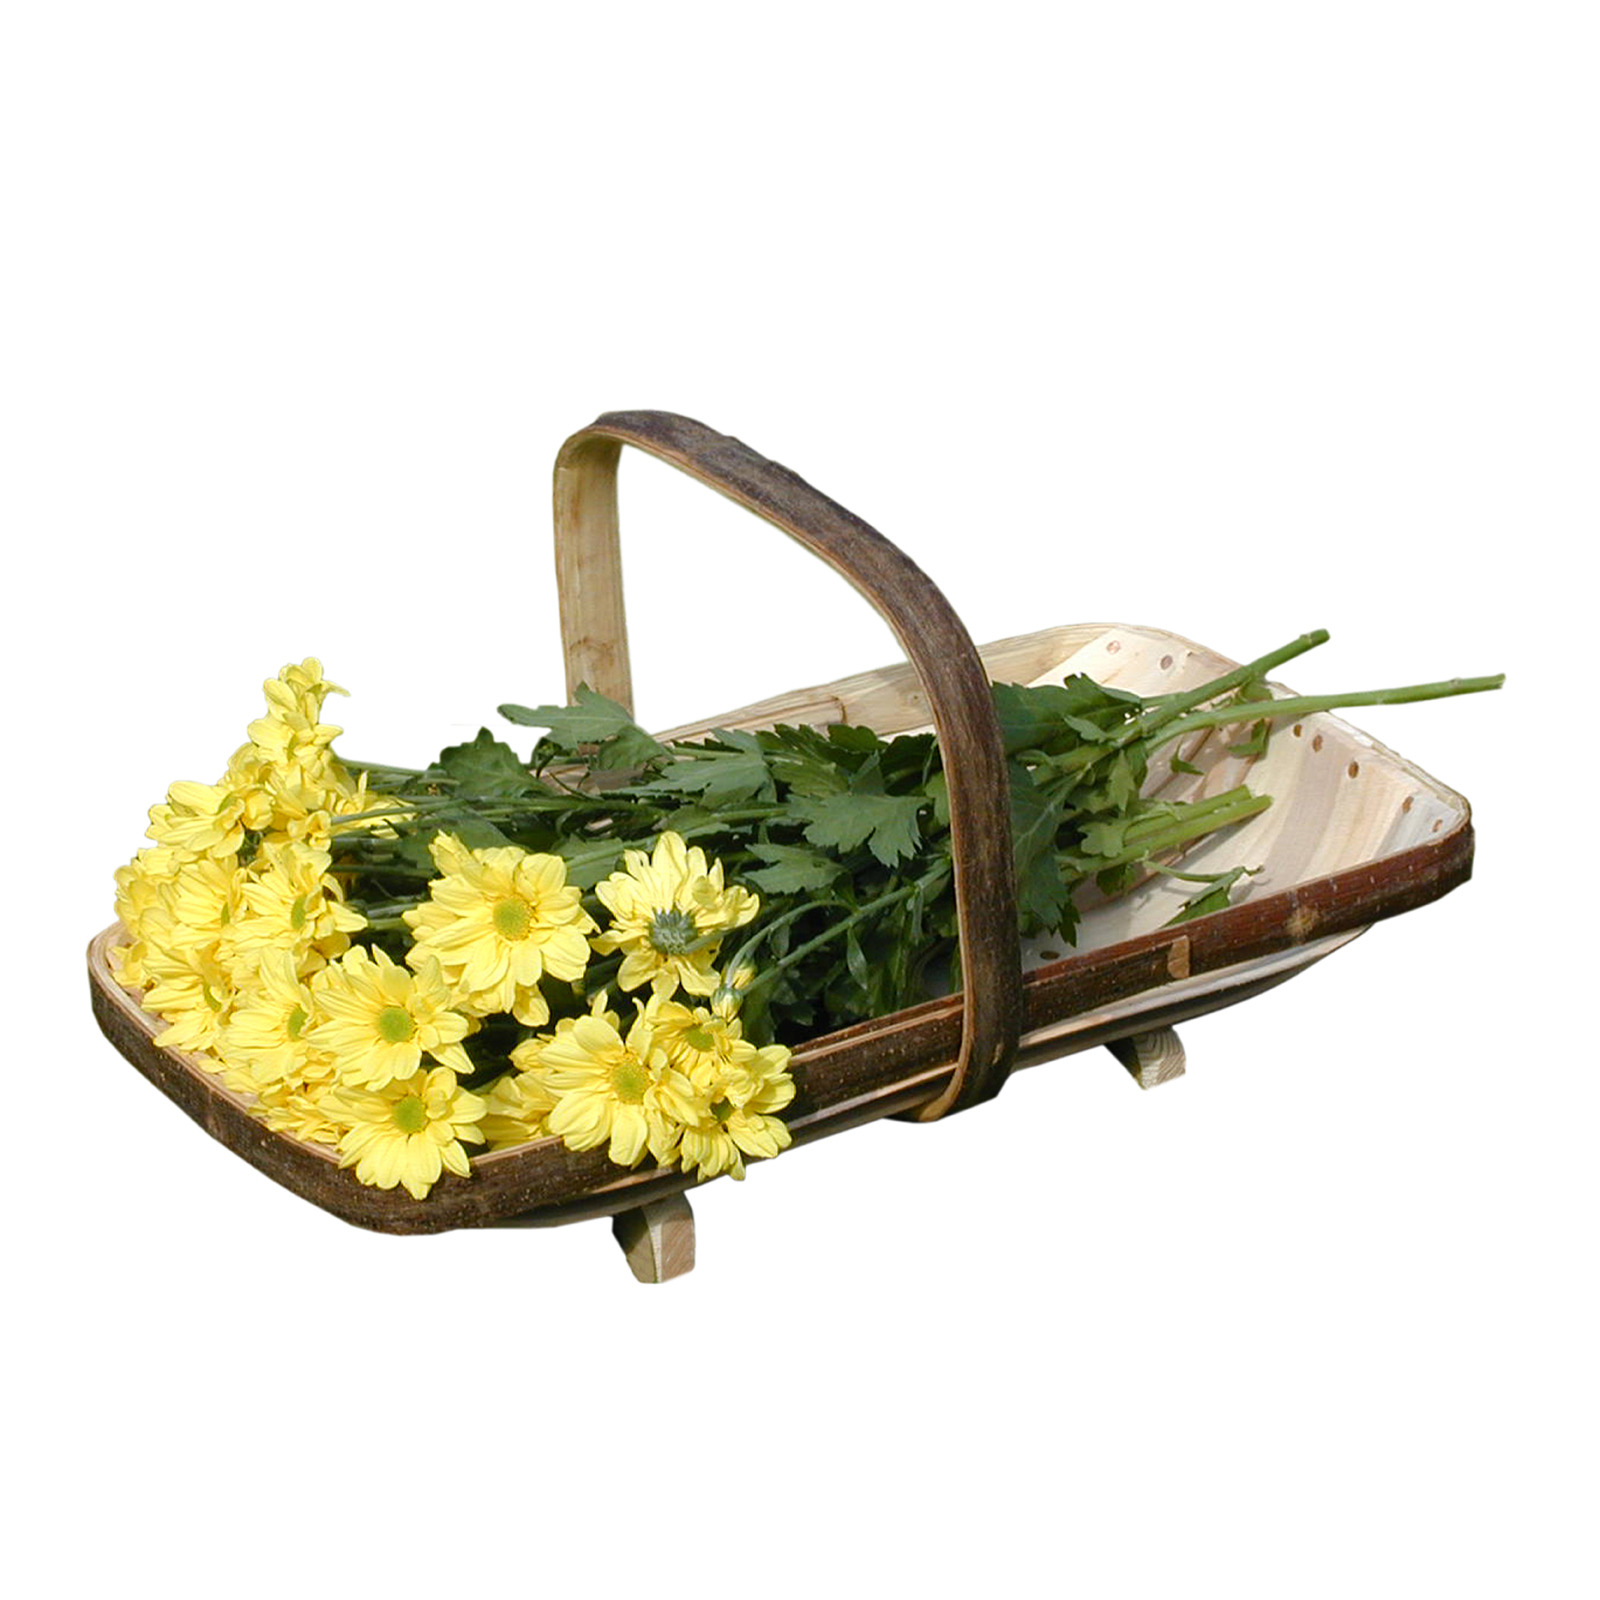 The Royal Sussex Trug - Flower Trugs Size 3